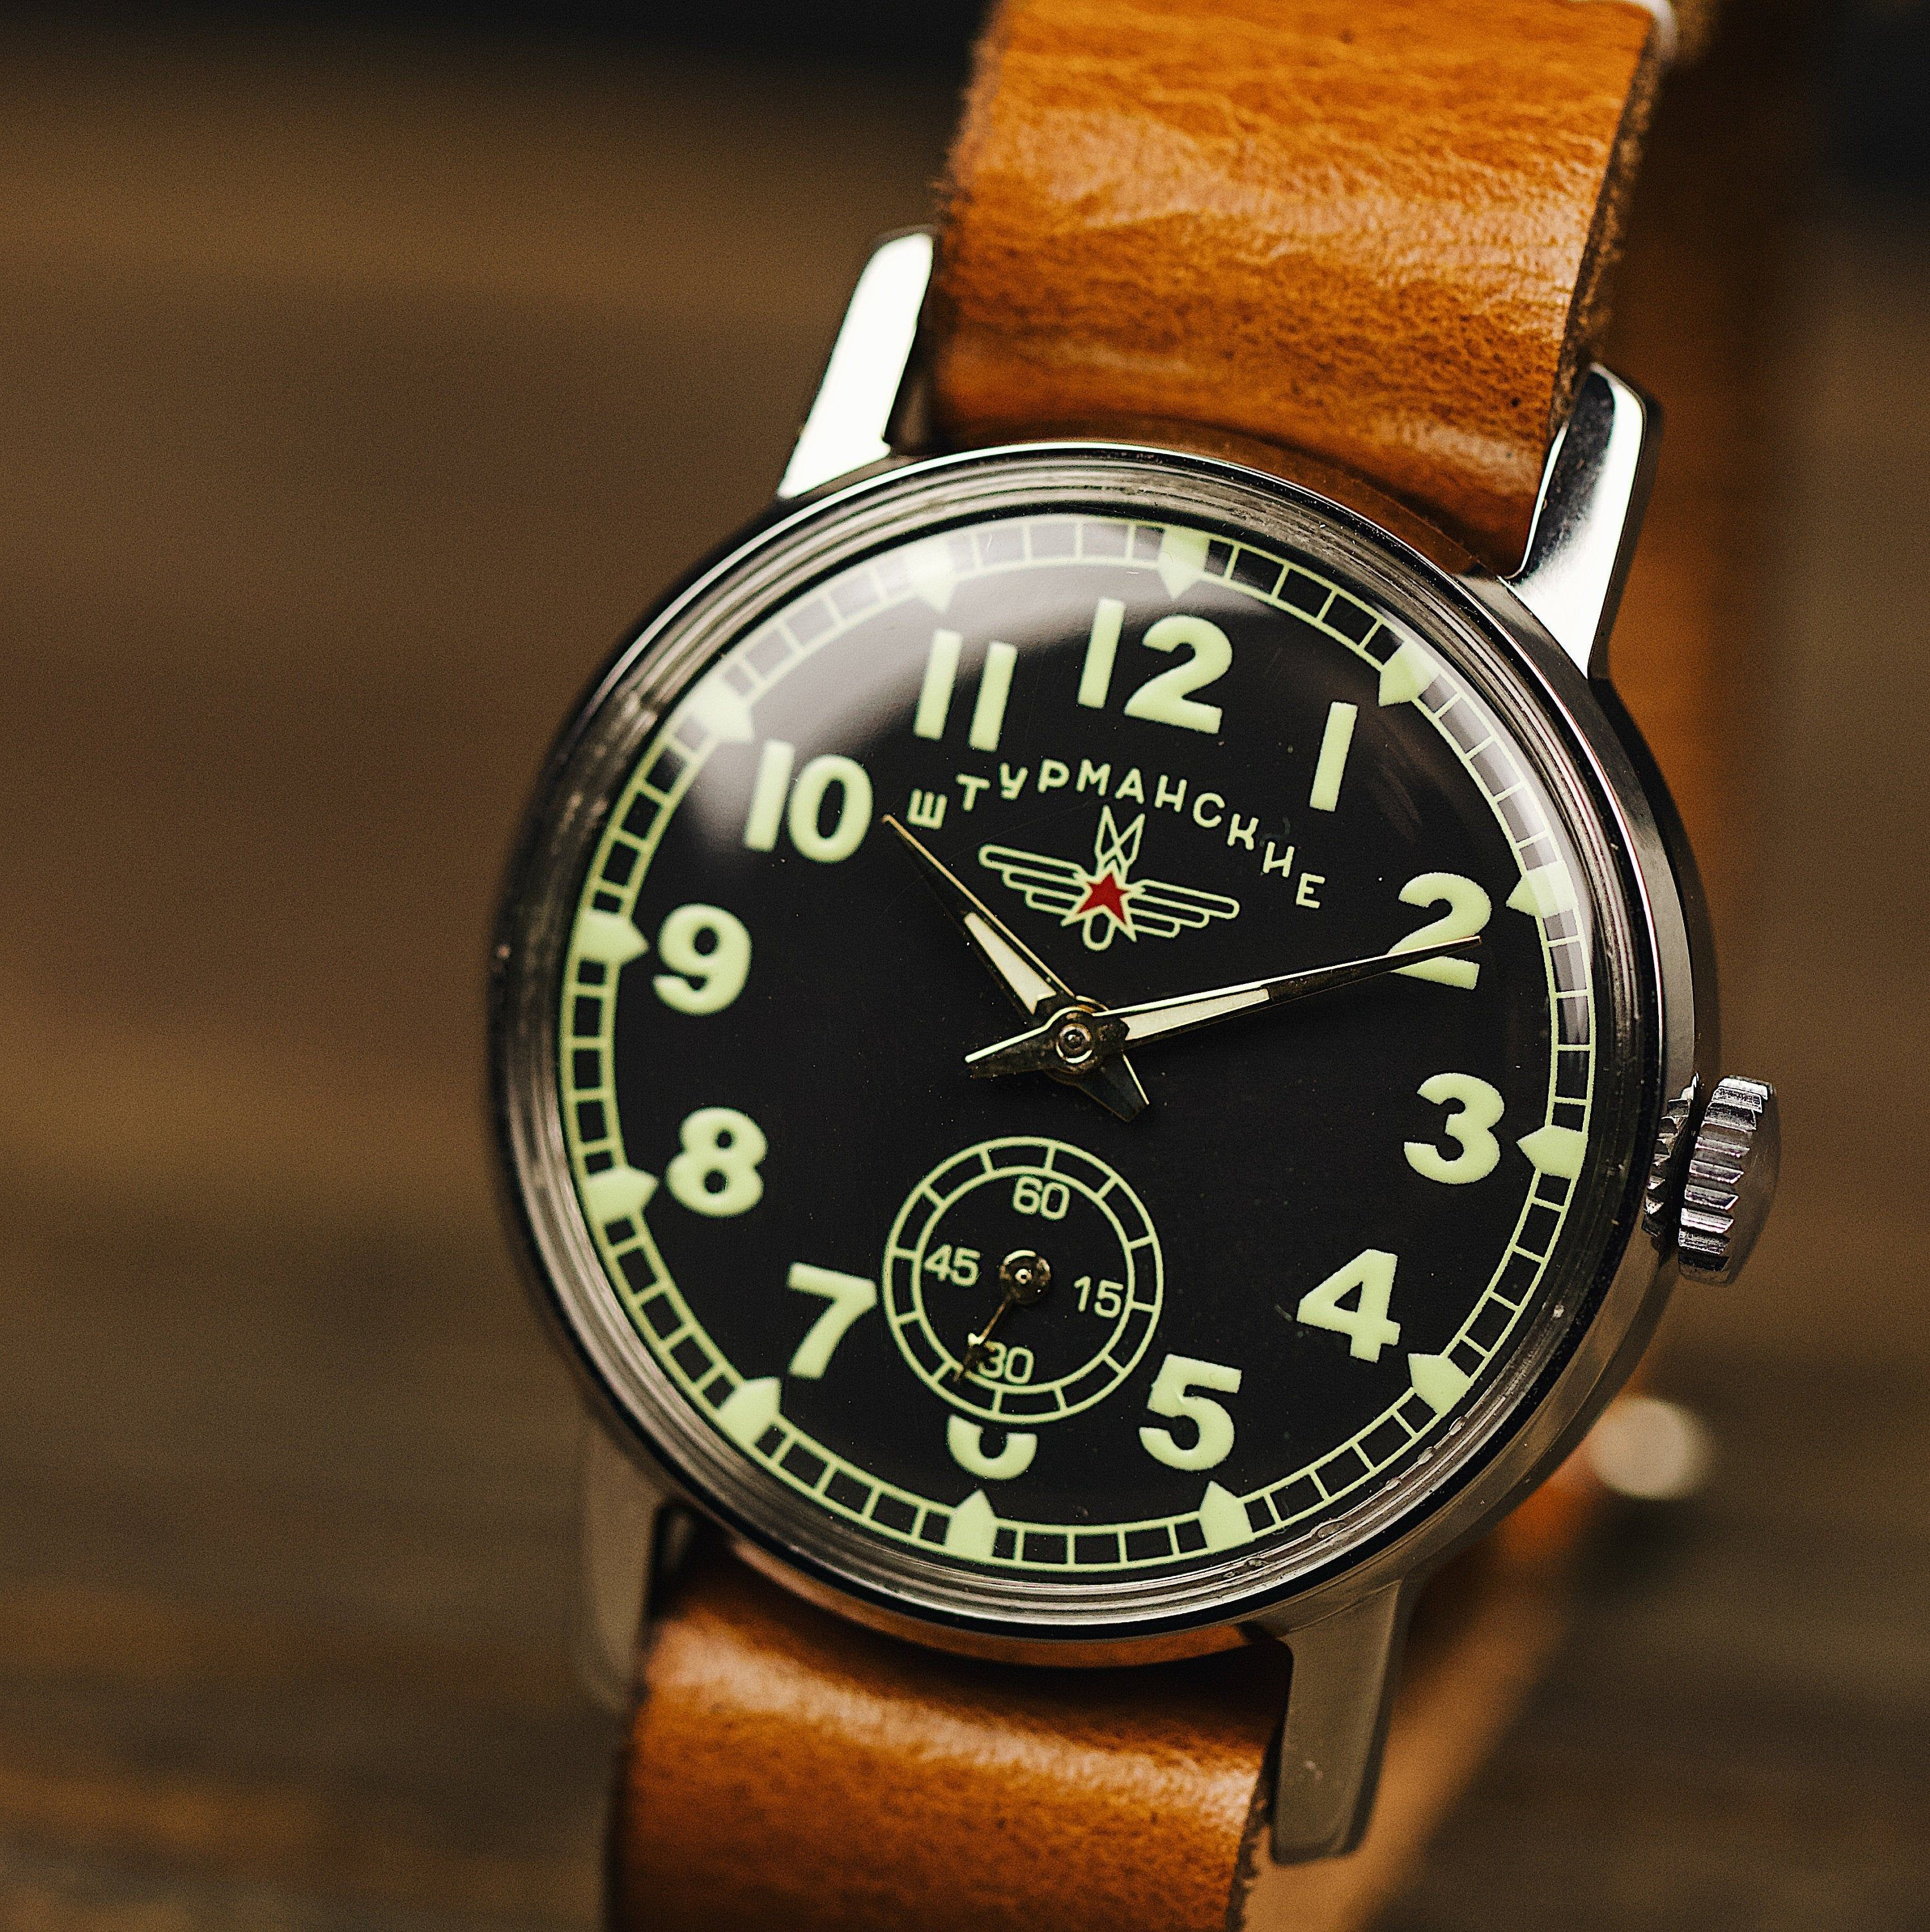 Mens Watches Christmas 2020 Military vintage watch SHTURMANSKIE. Watches for men, watch men